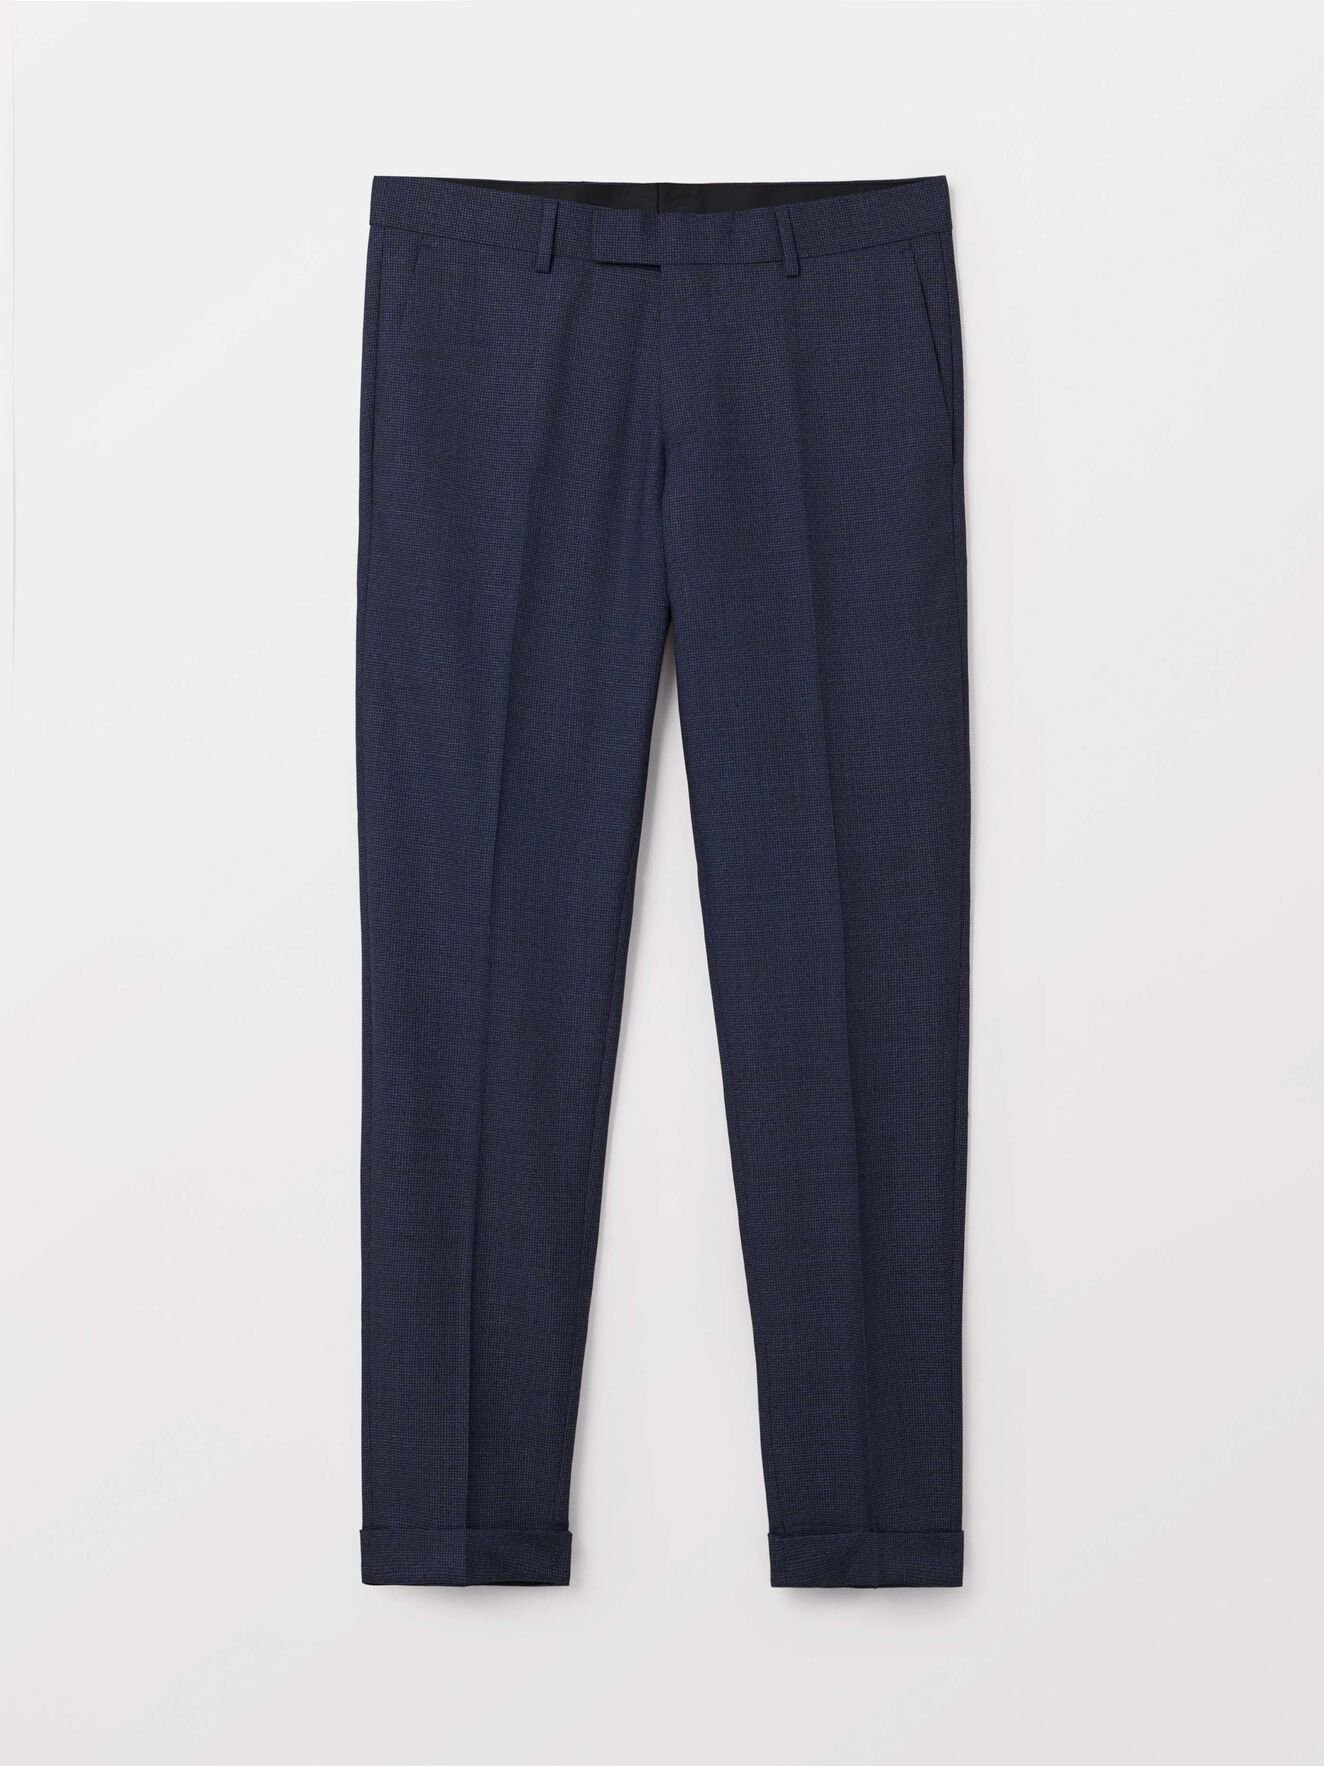 Tilman Trousers in Soft blue from Tiger of Sweden